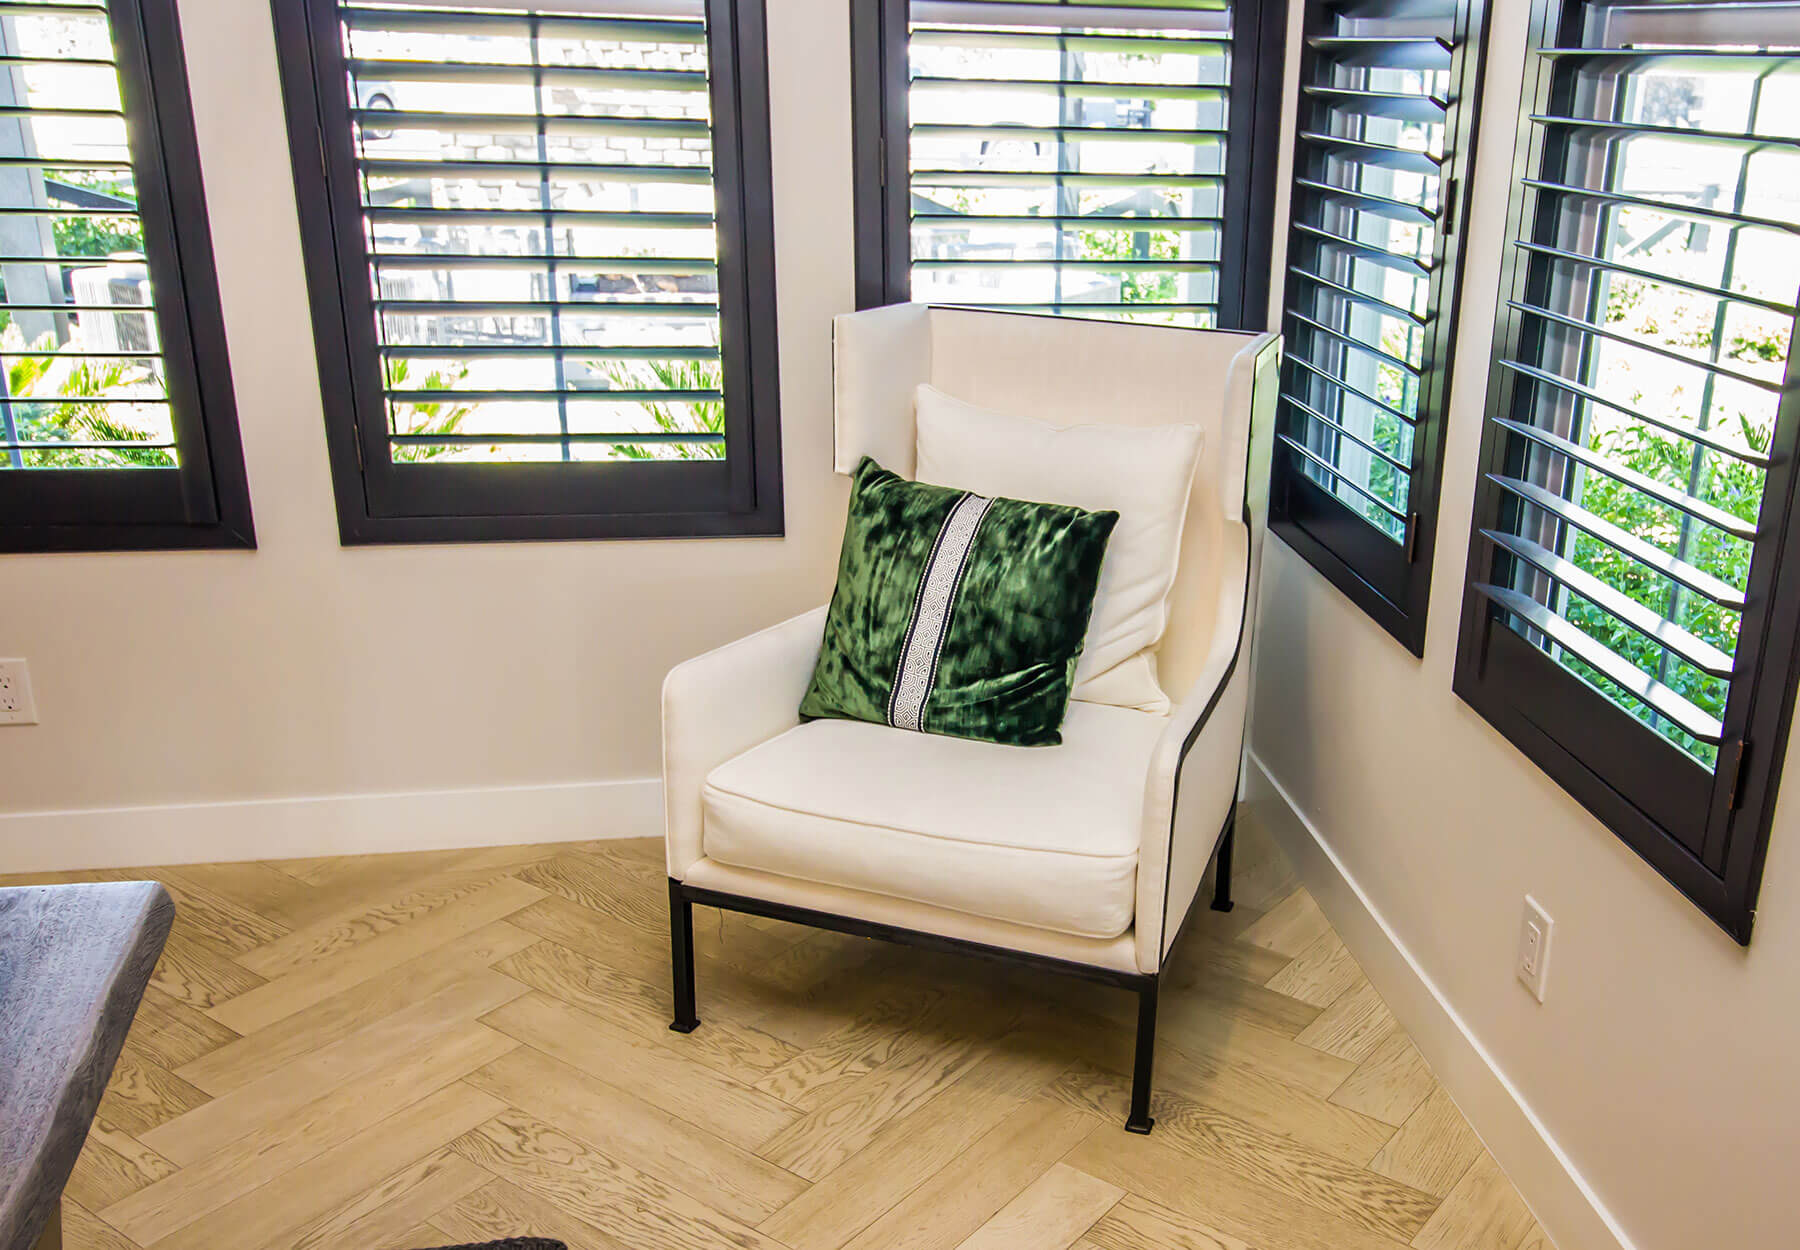 A room with a chair and wood shuttered windows